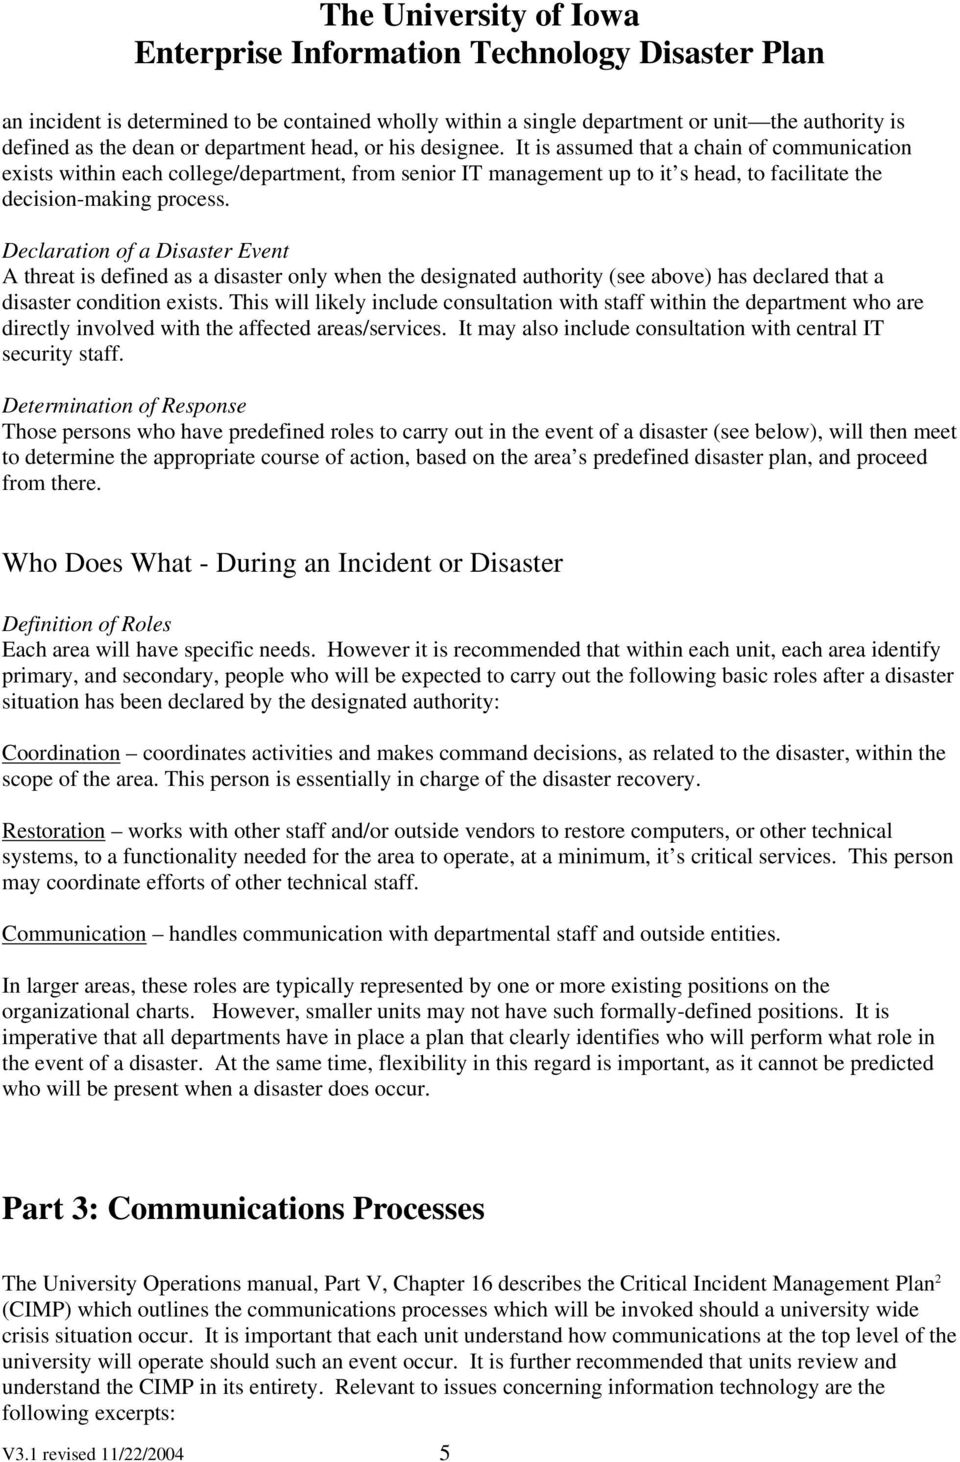 Declaration of a Disaster Event A threat is defined as a disaster only when the designated authority (see above) has declared that a disaster condition exists.